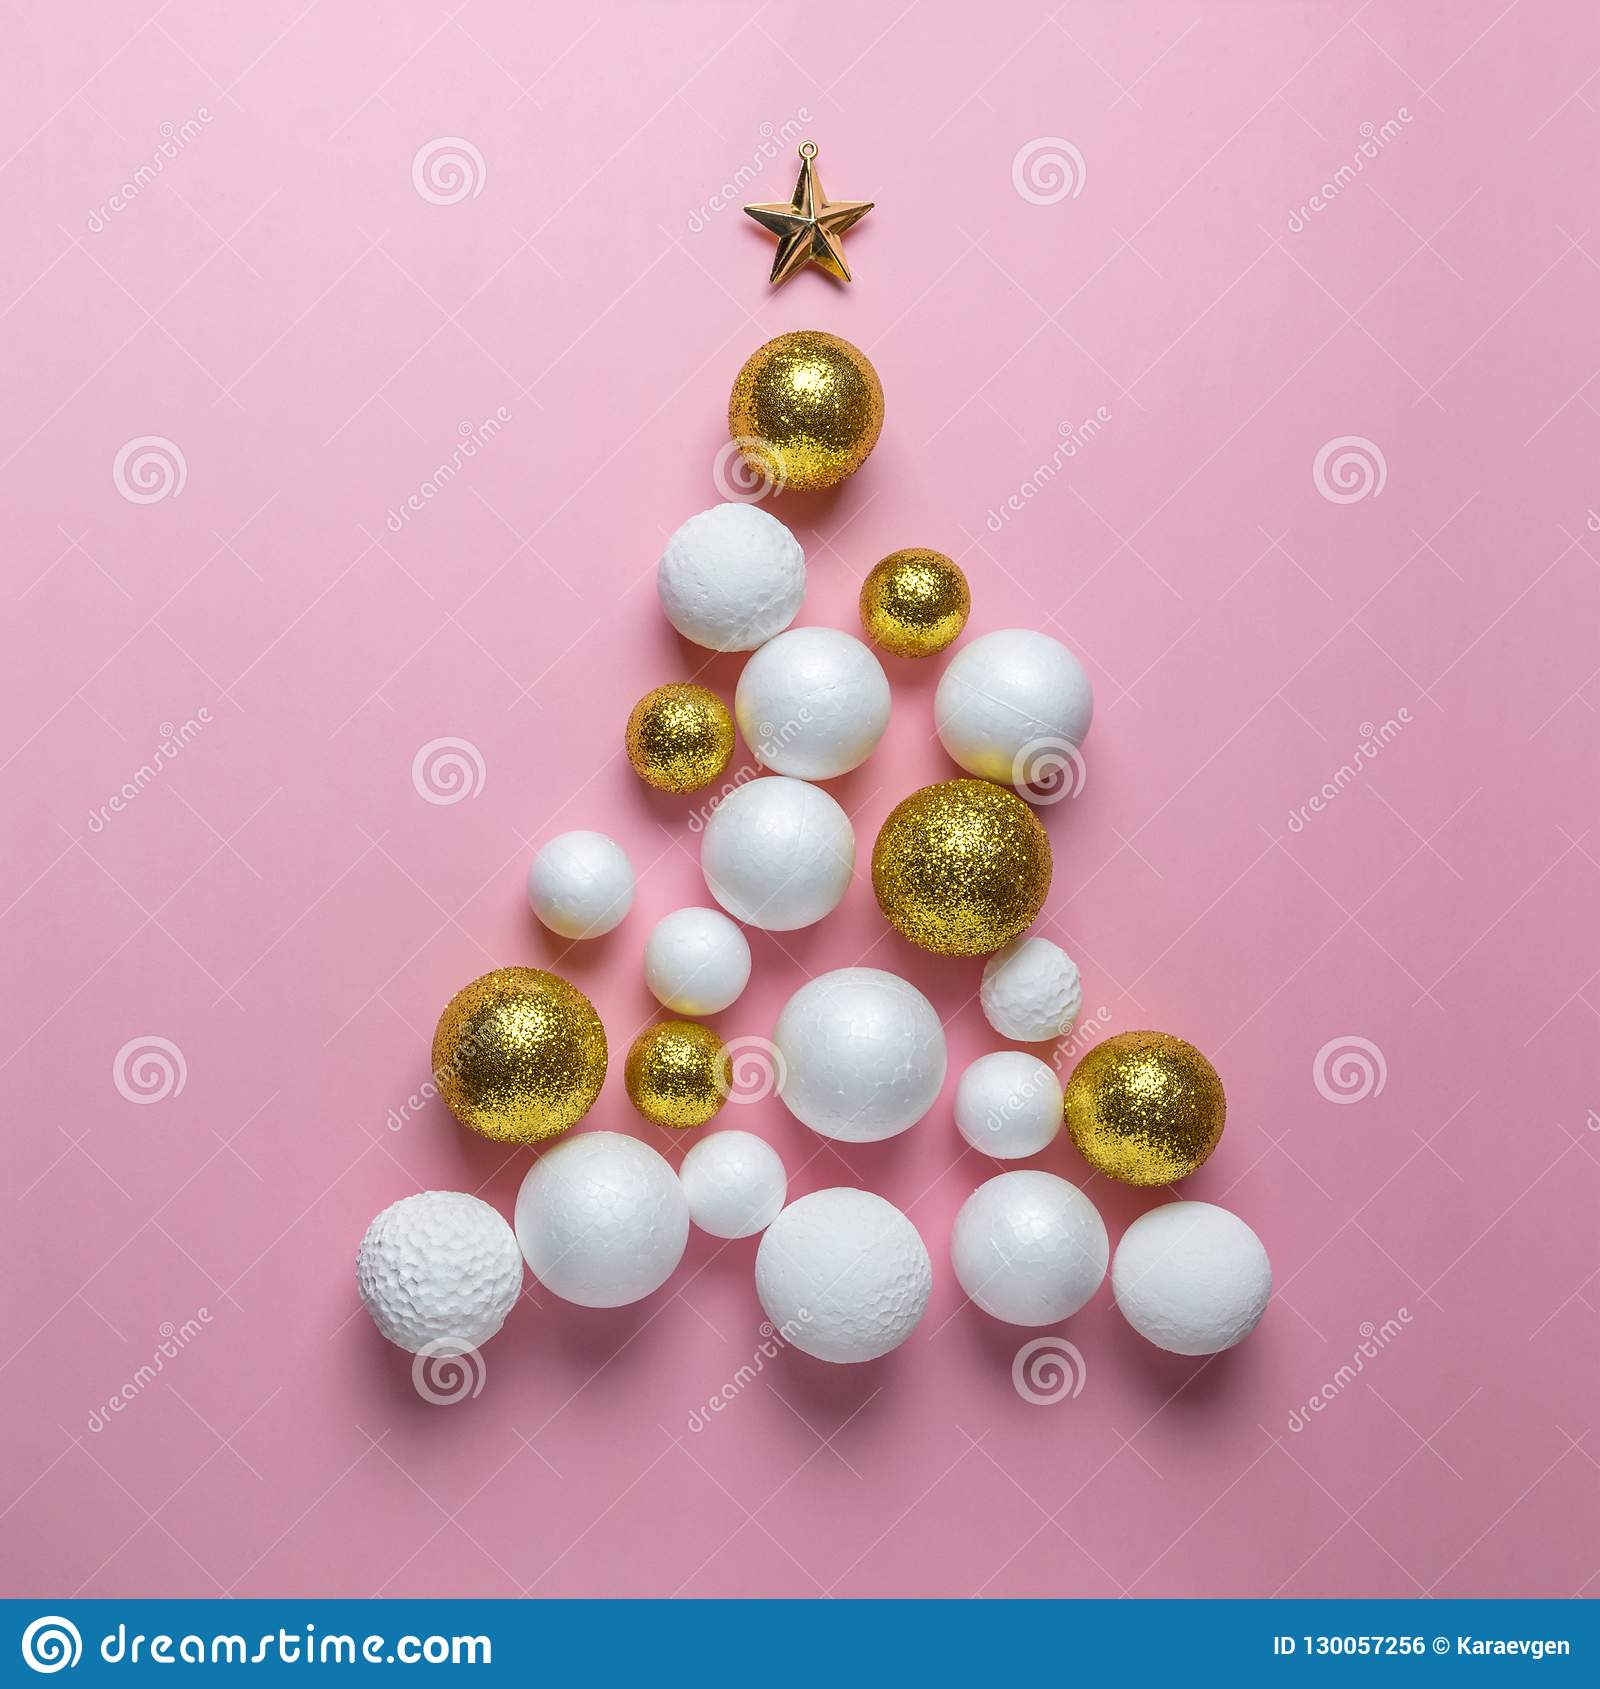 Christmas Tree Made Of Gold White And Red Glitter Ball Decoration On Pink Background Stock Photo Image Of Life Decoration 130057256